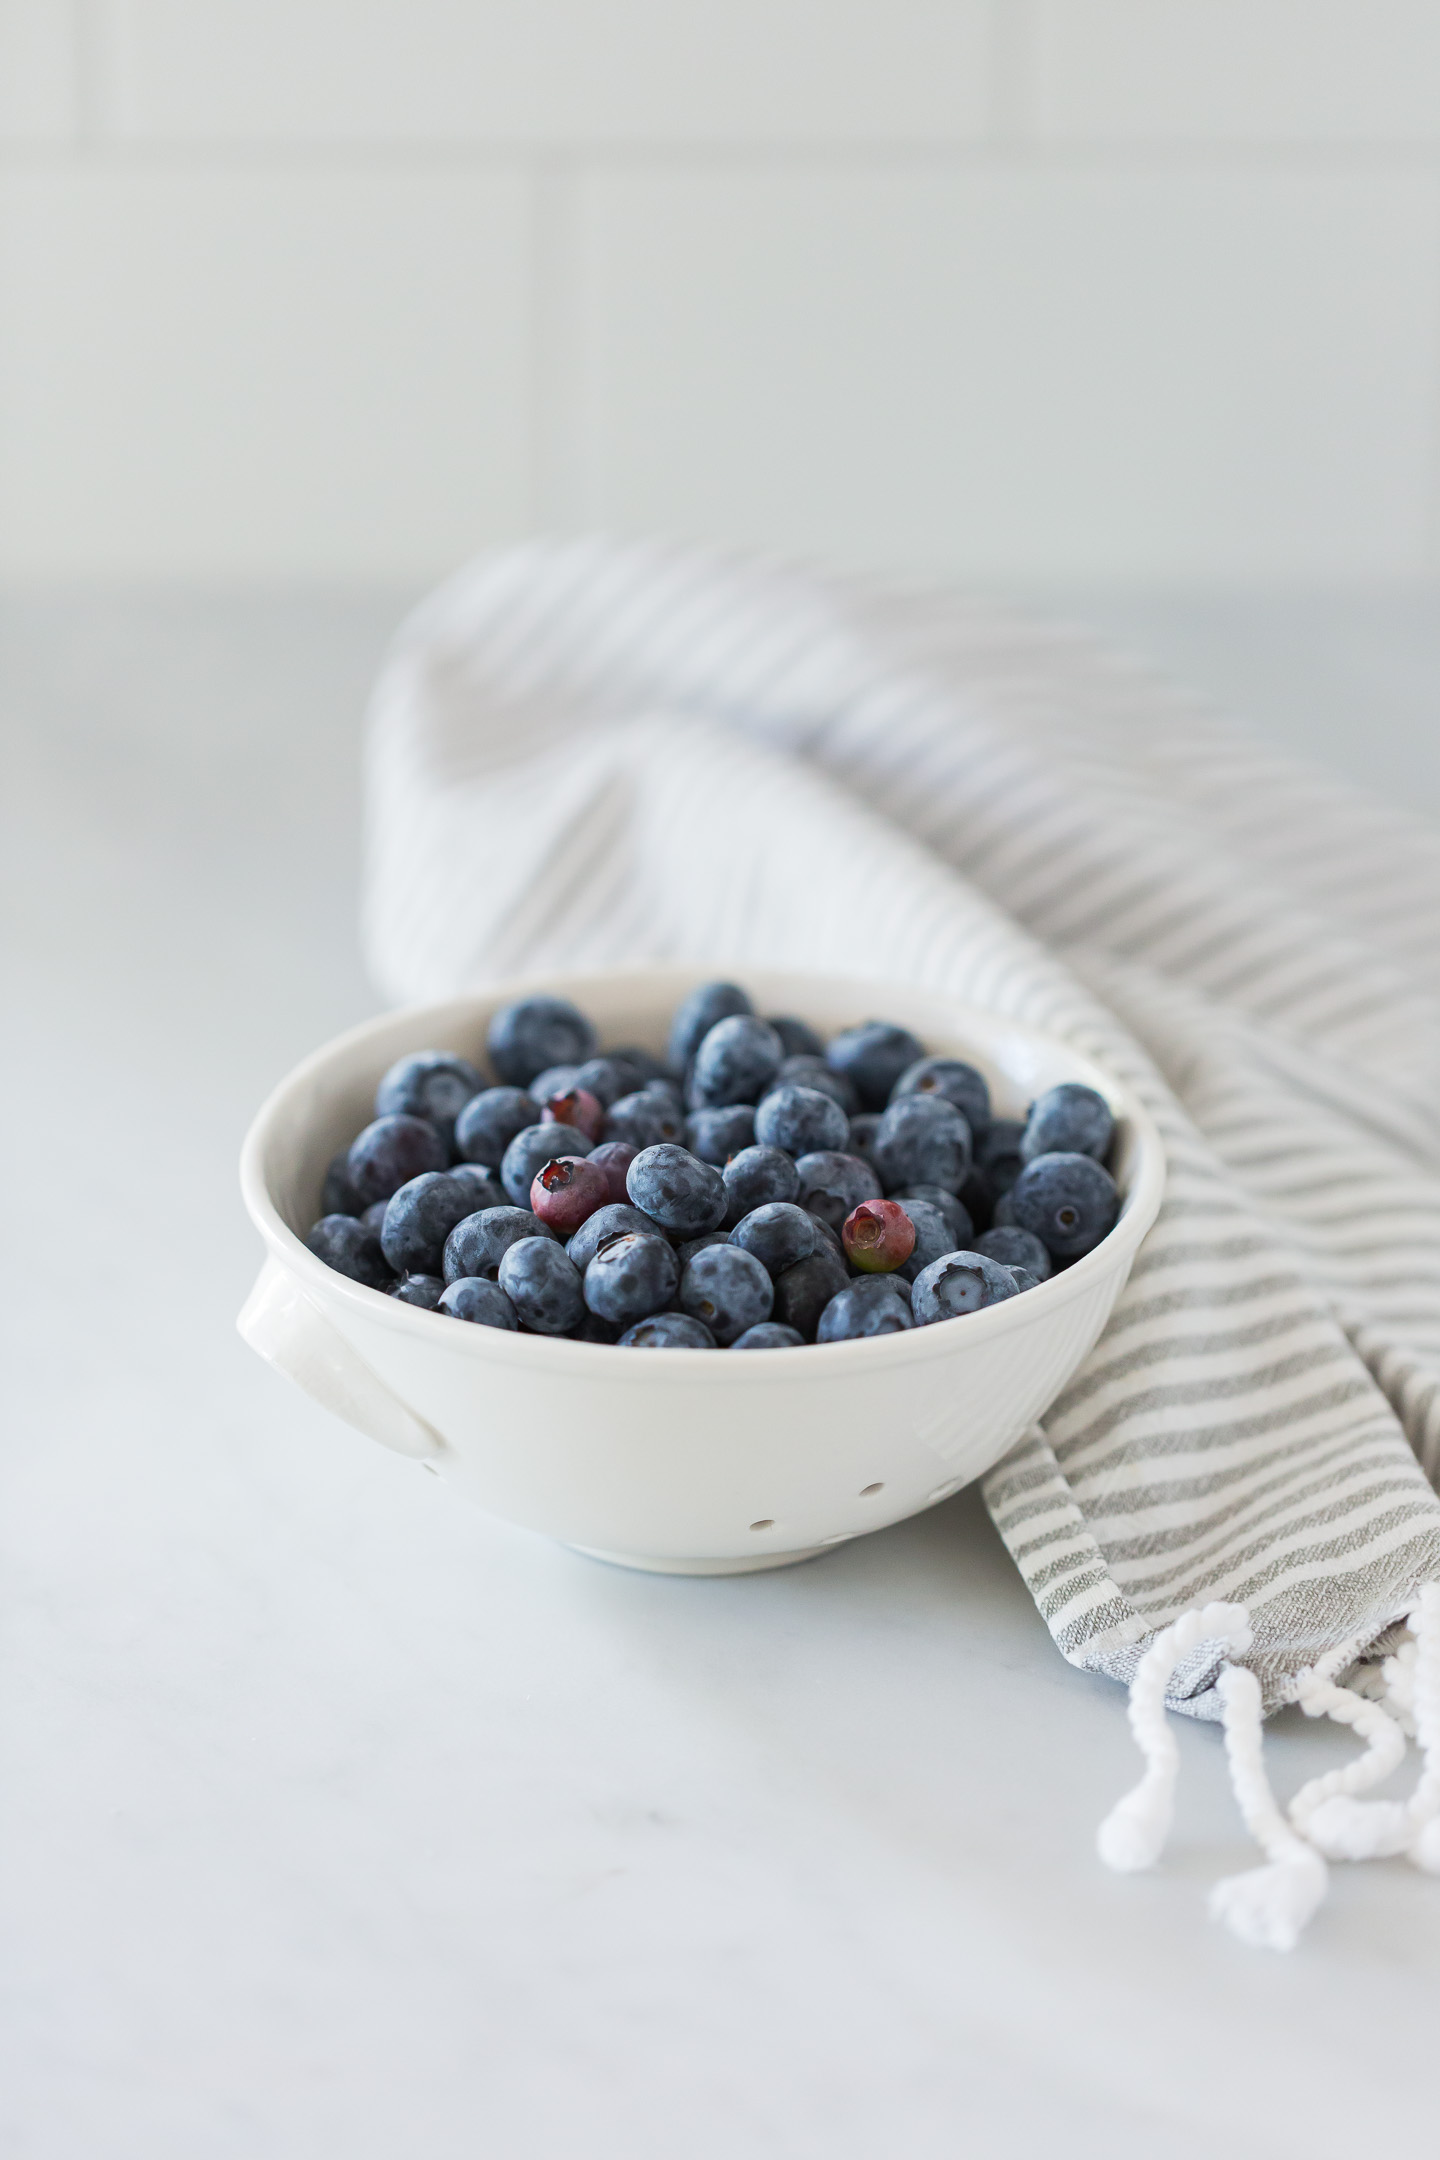 A bowl of blueberries.